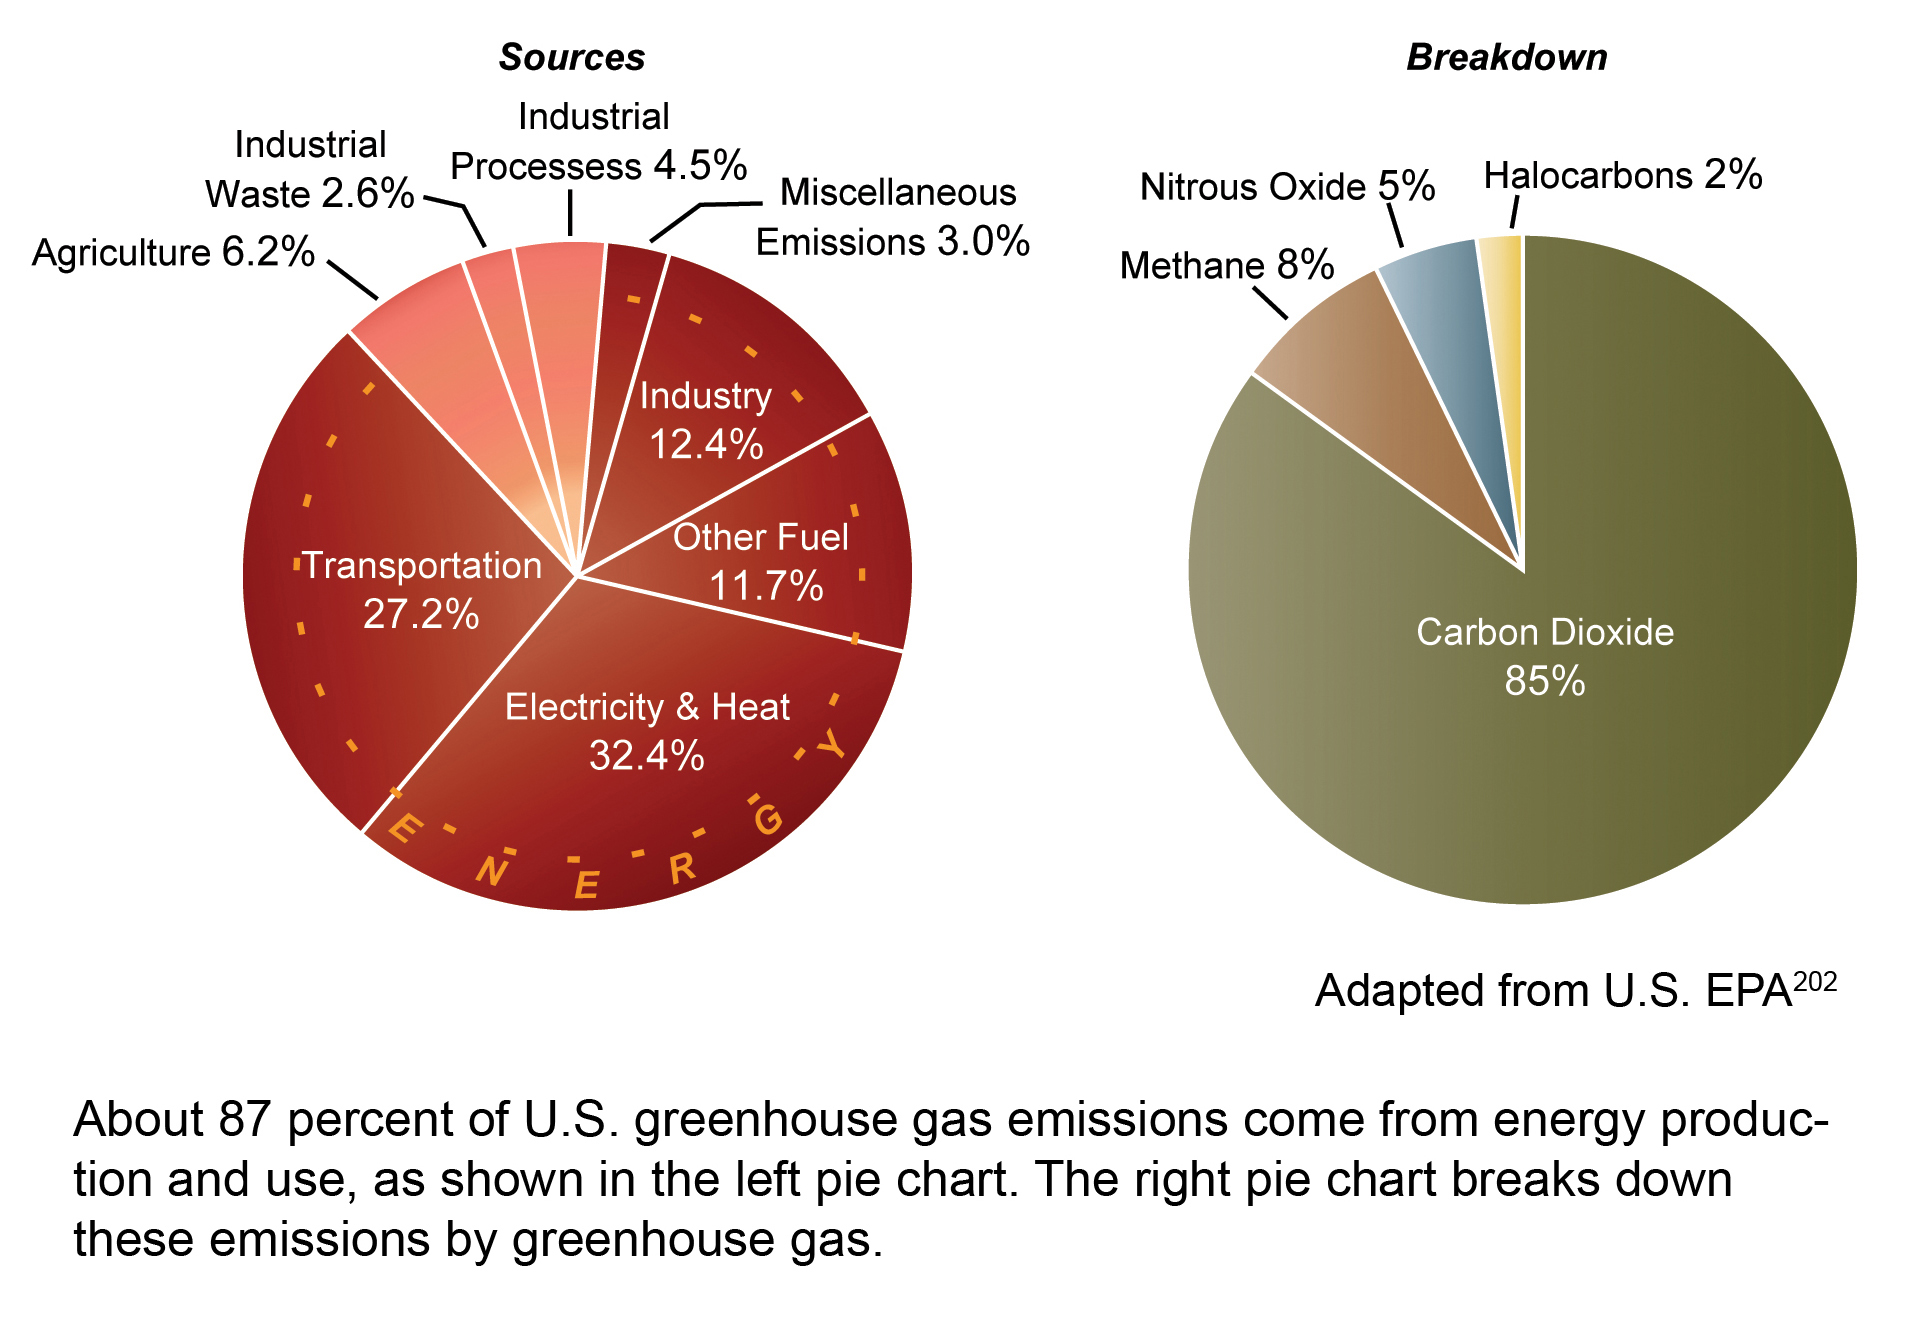 Sources of us greenhouse emissions 2003 global climate change summary ccuart Choice Image